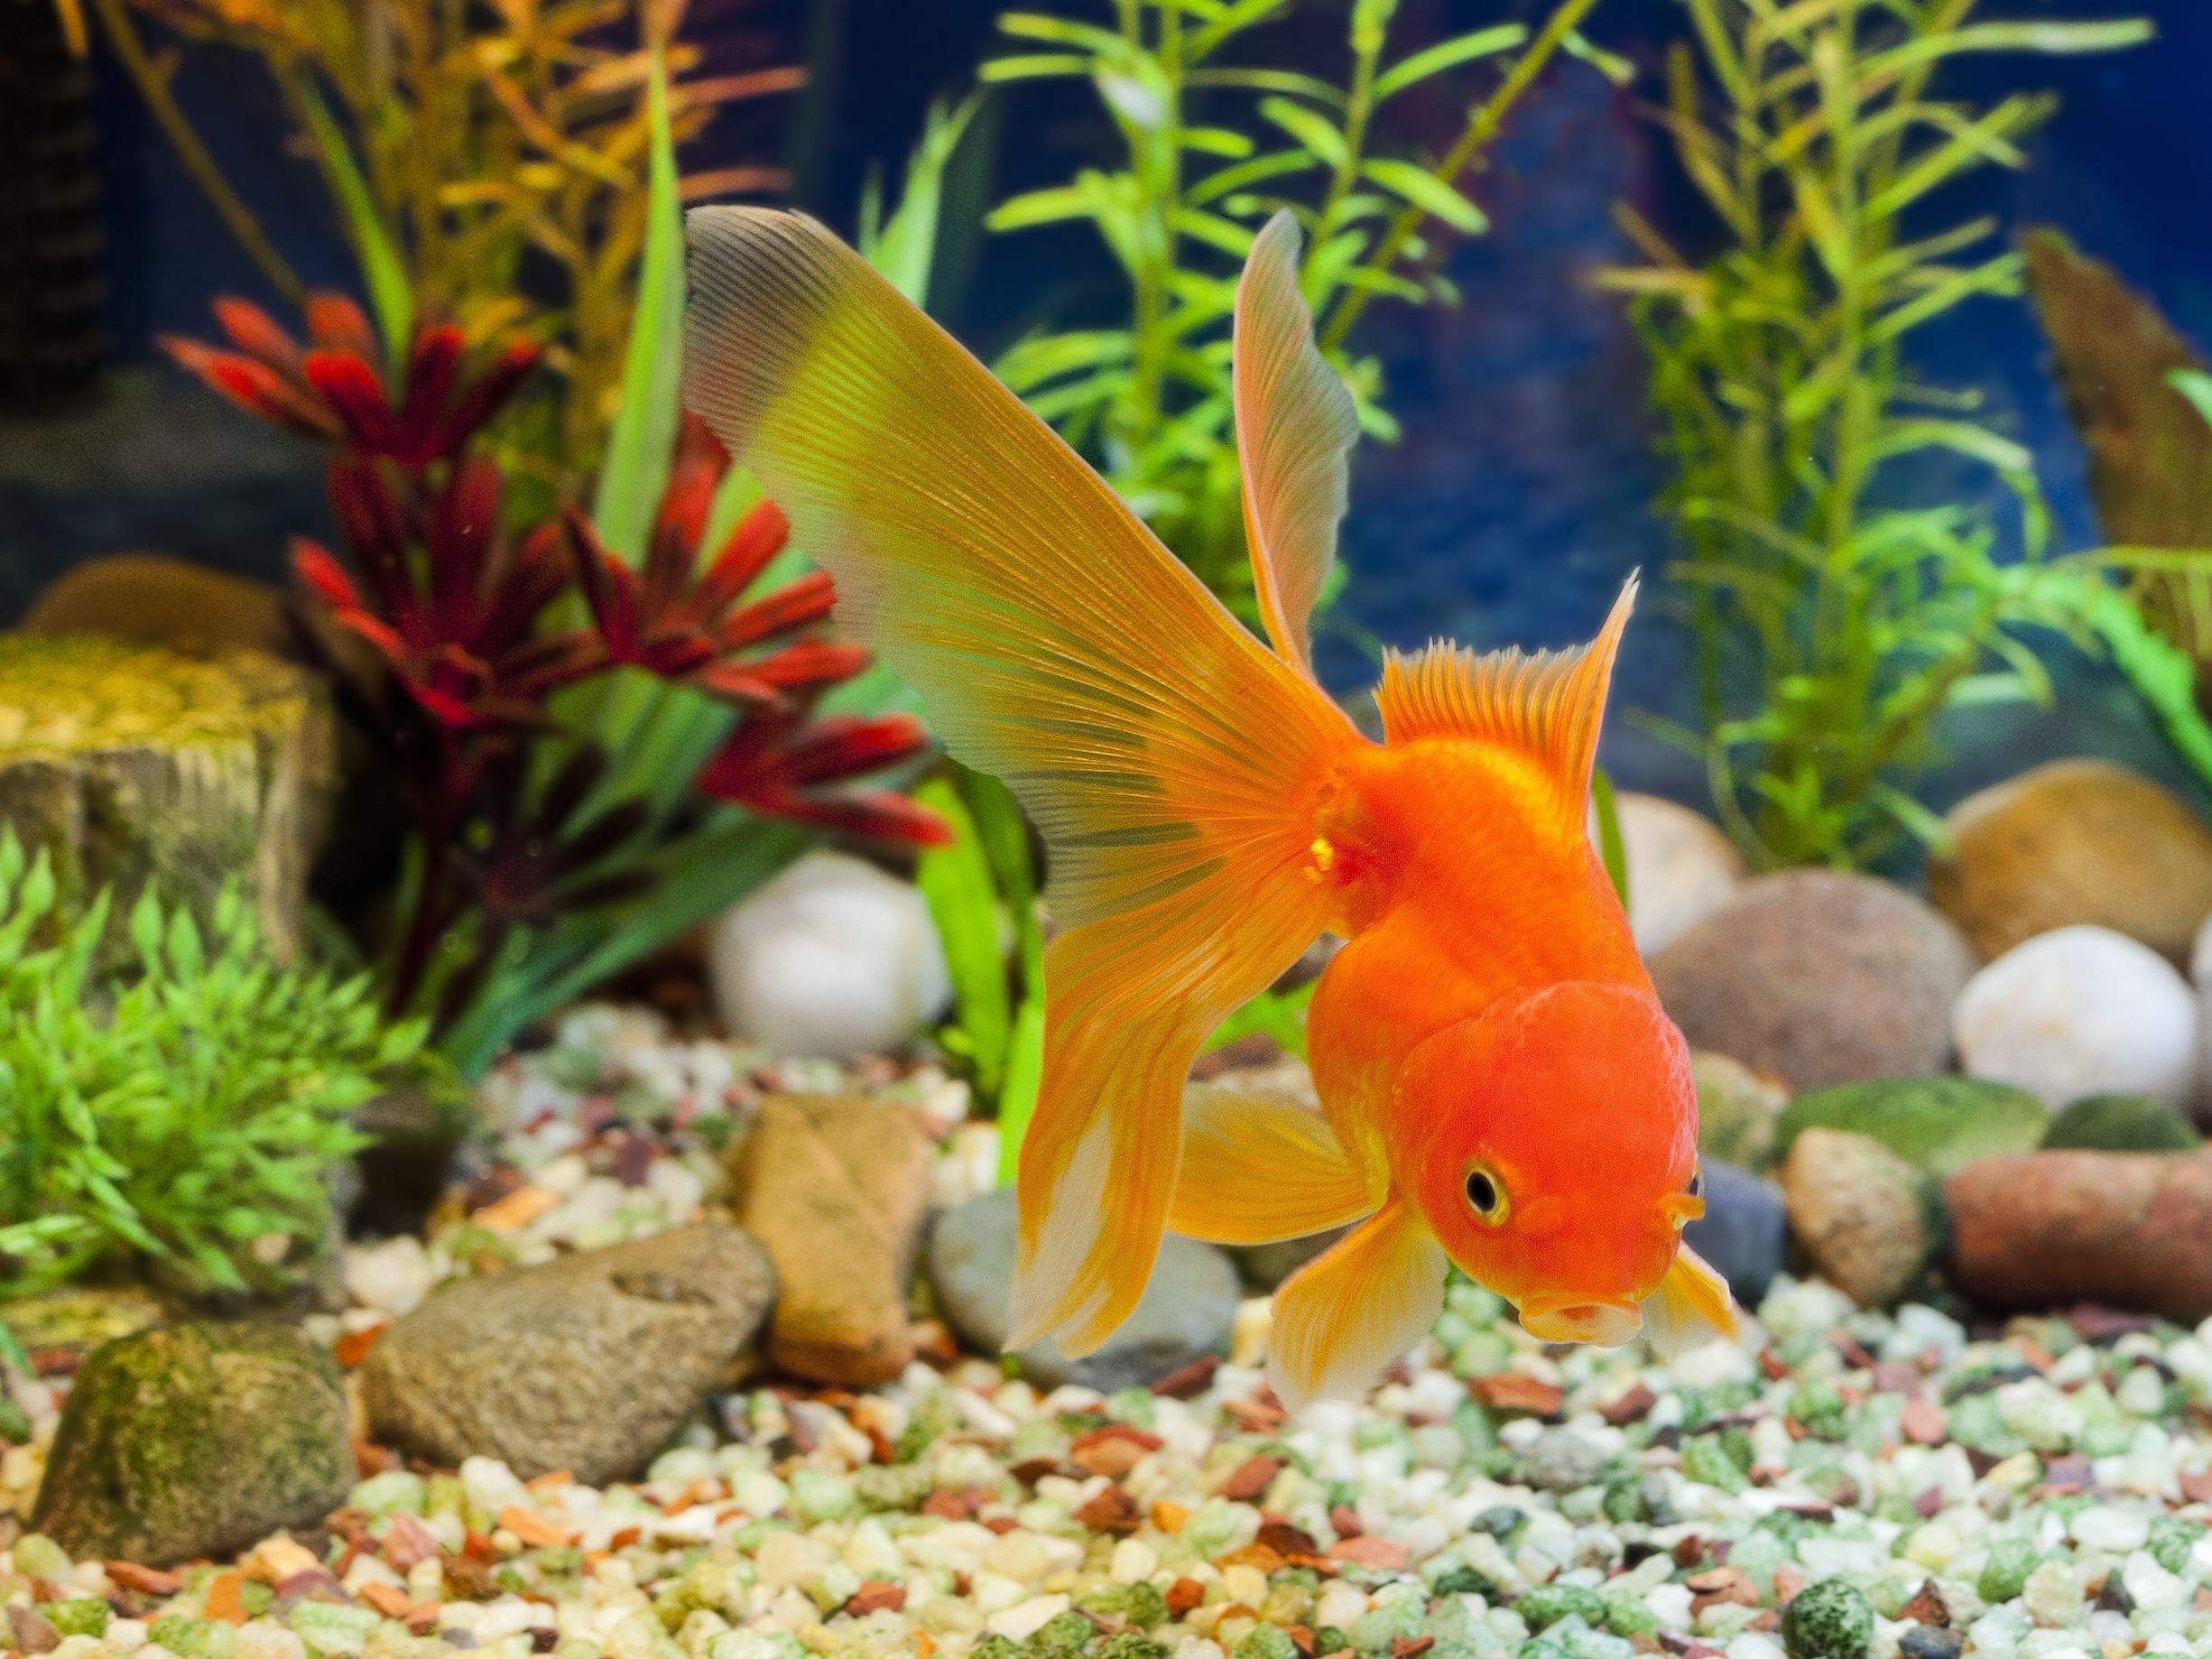 Freshwater fish tank decoration ideas luxury how to